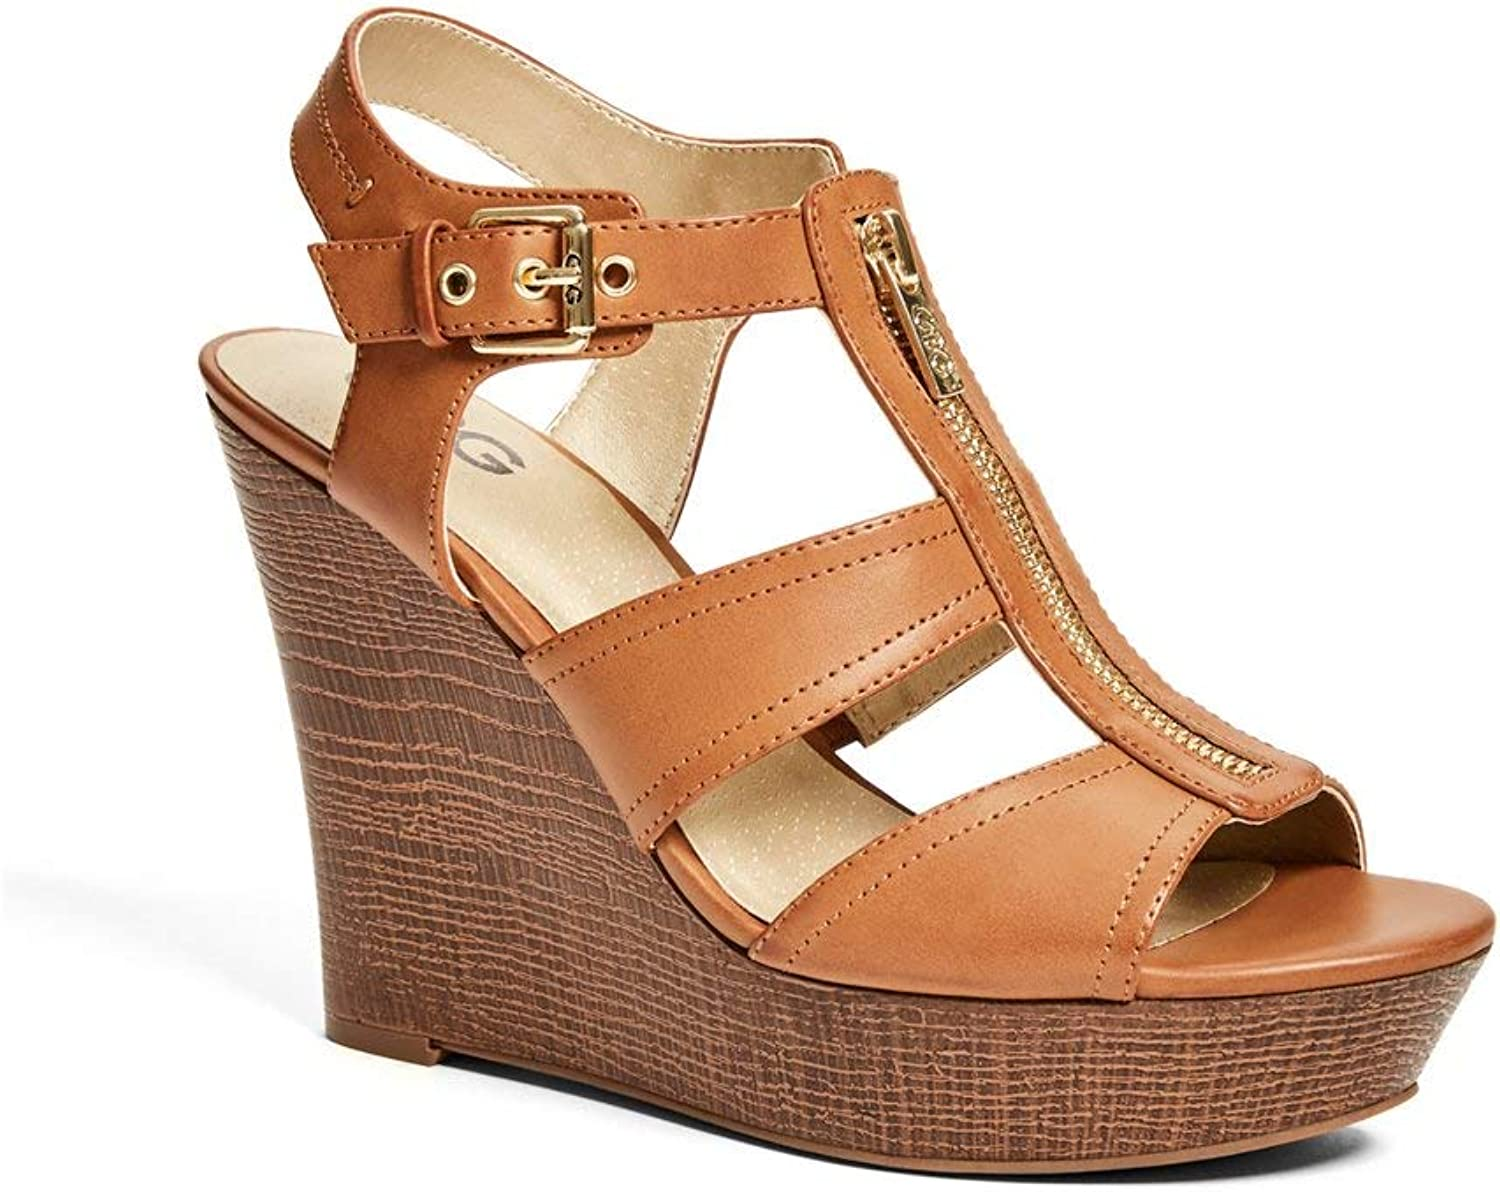 G By Guess Women's Davyn Front-Zip Wedges